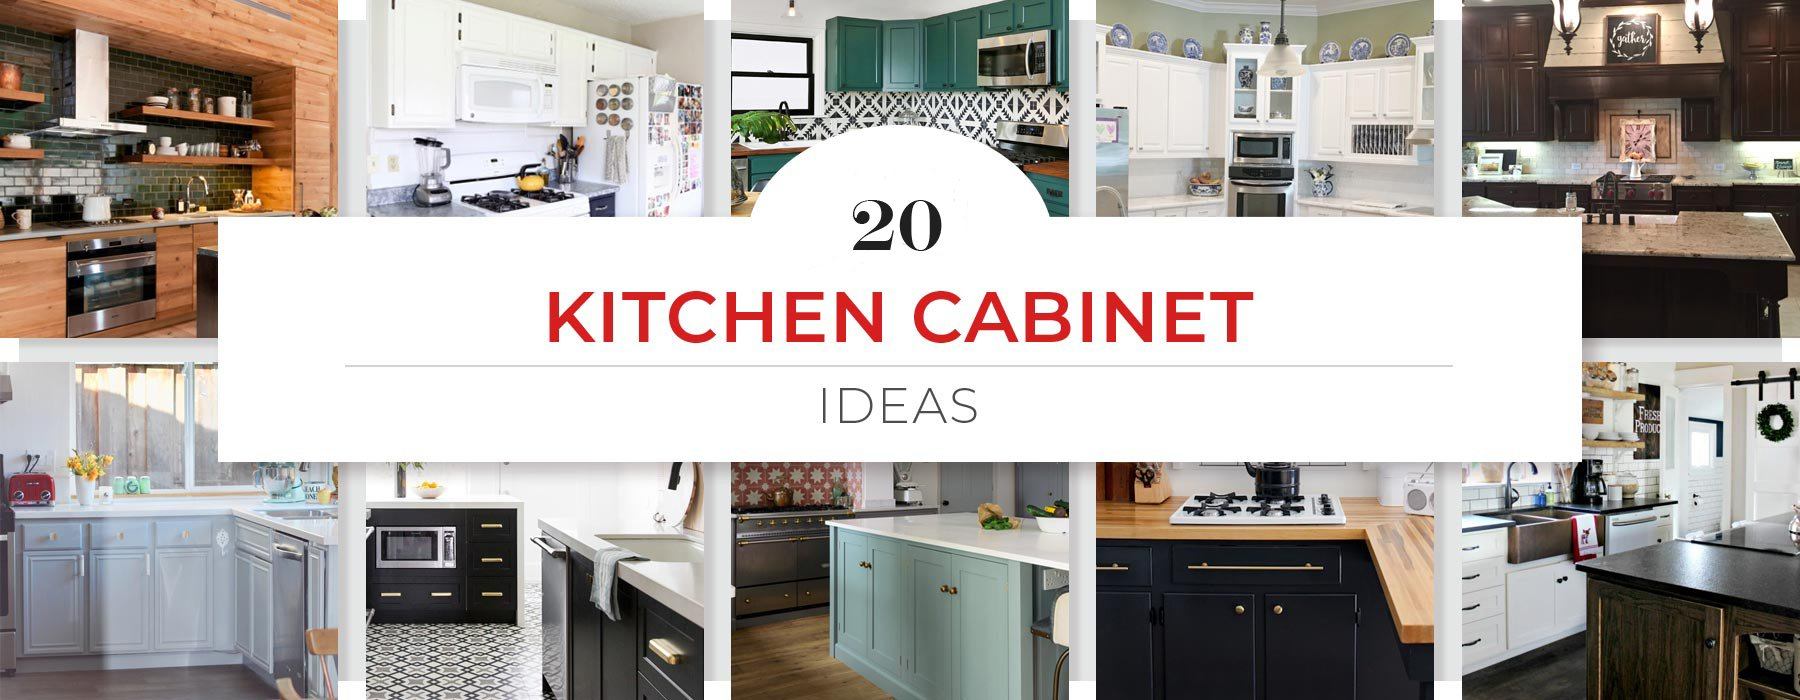 20 Latest Fascinating Kitchen Cupboard Ideas Cabinet Project - 1